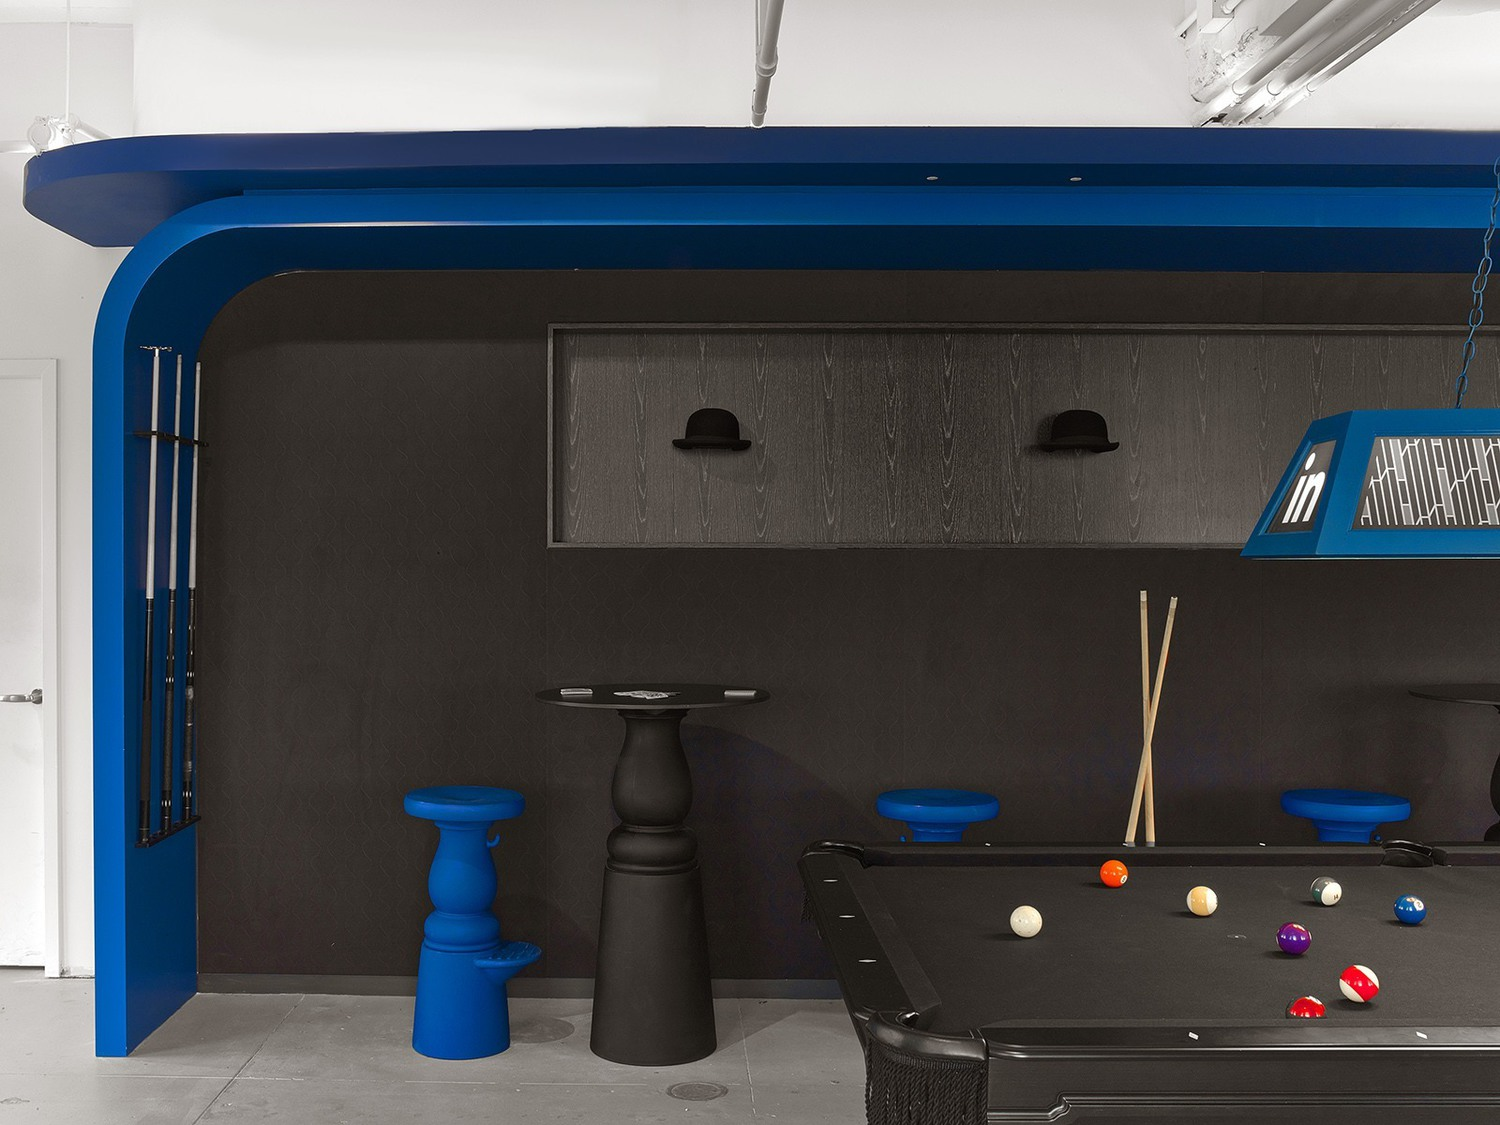 A Pool Room Decorated with Bowler Hats